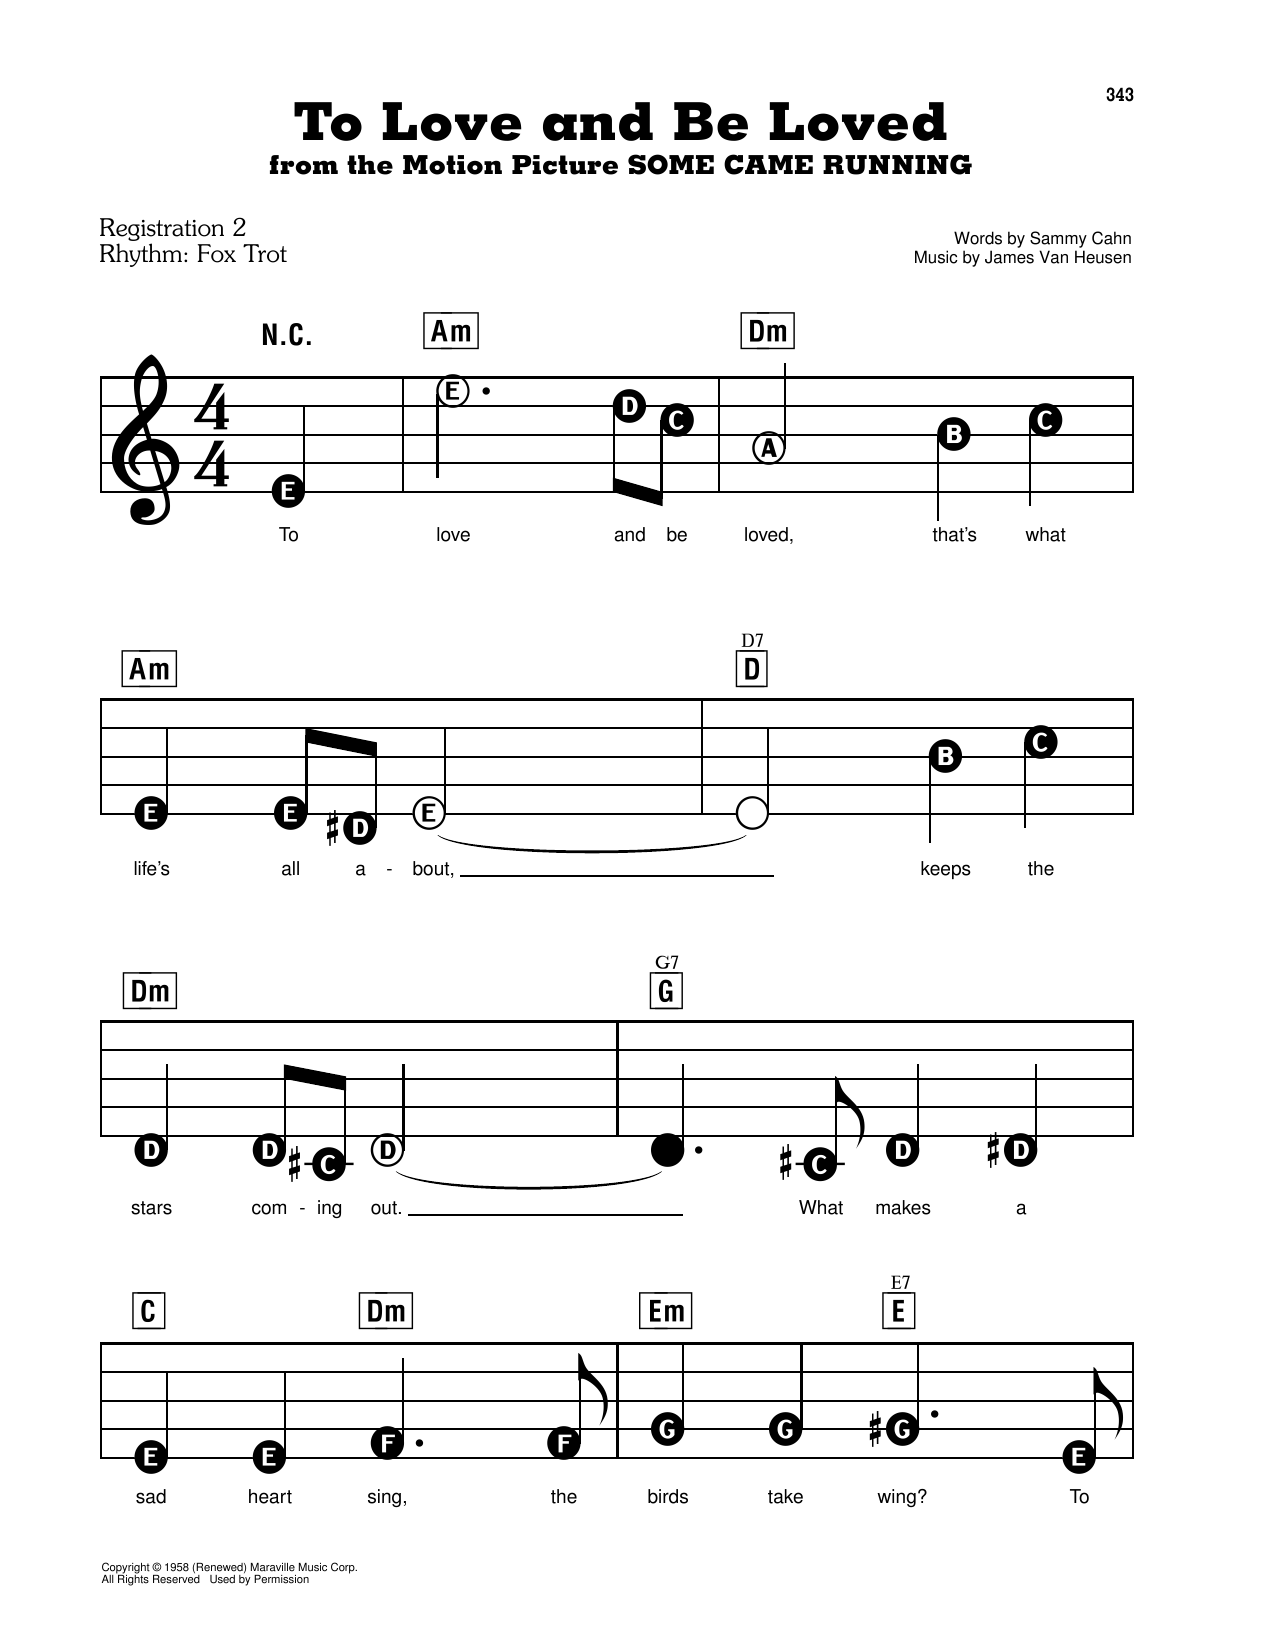 To Love And Be Loved (from Some Came Running) Sheet Music